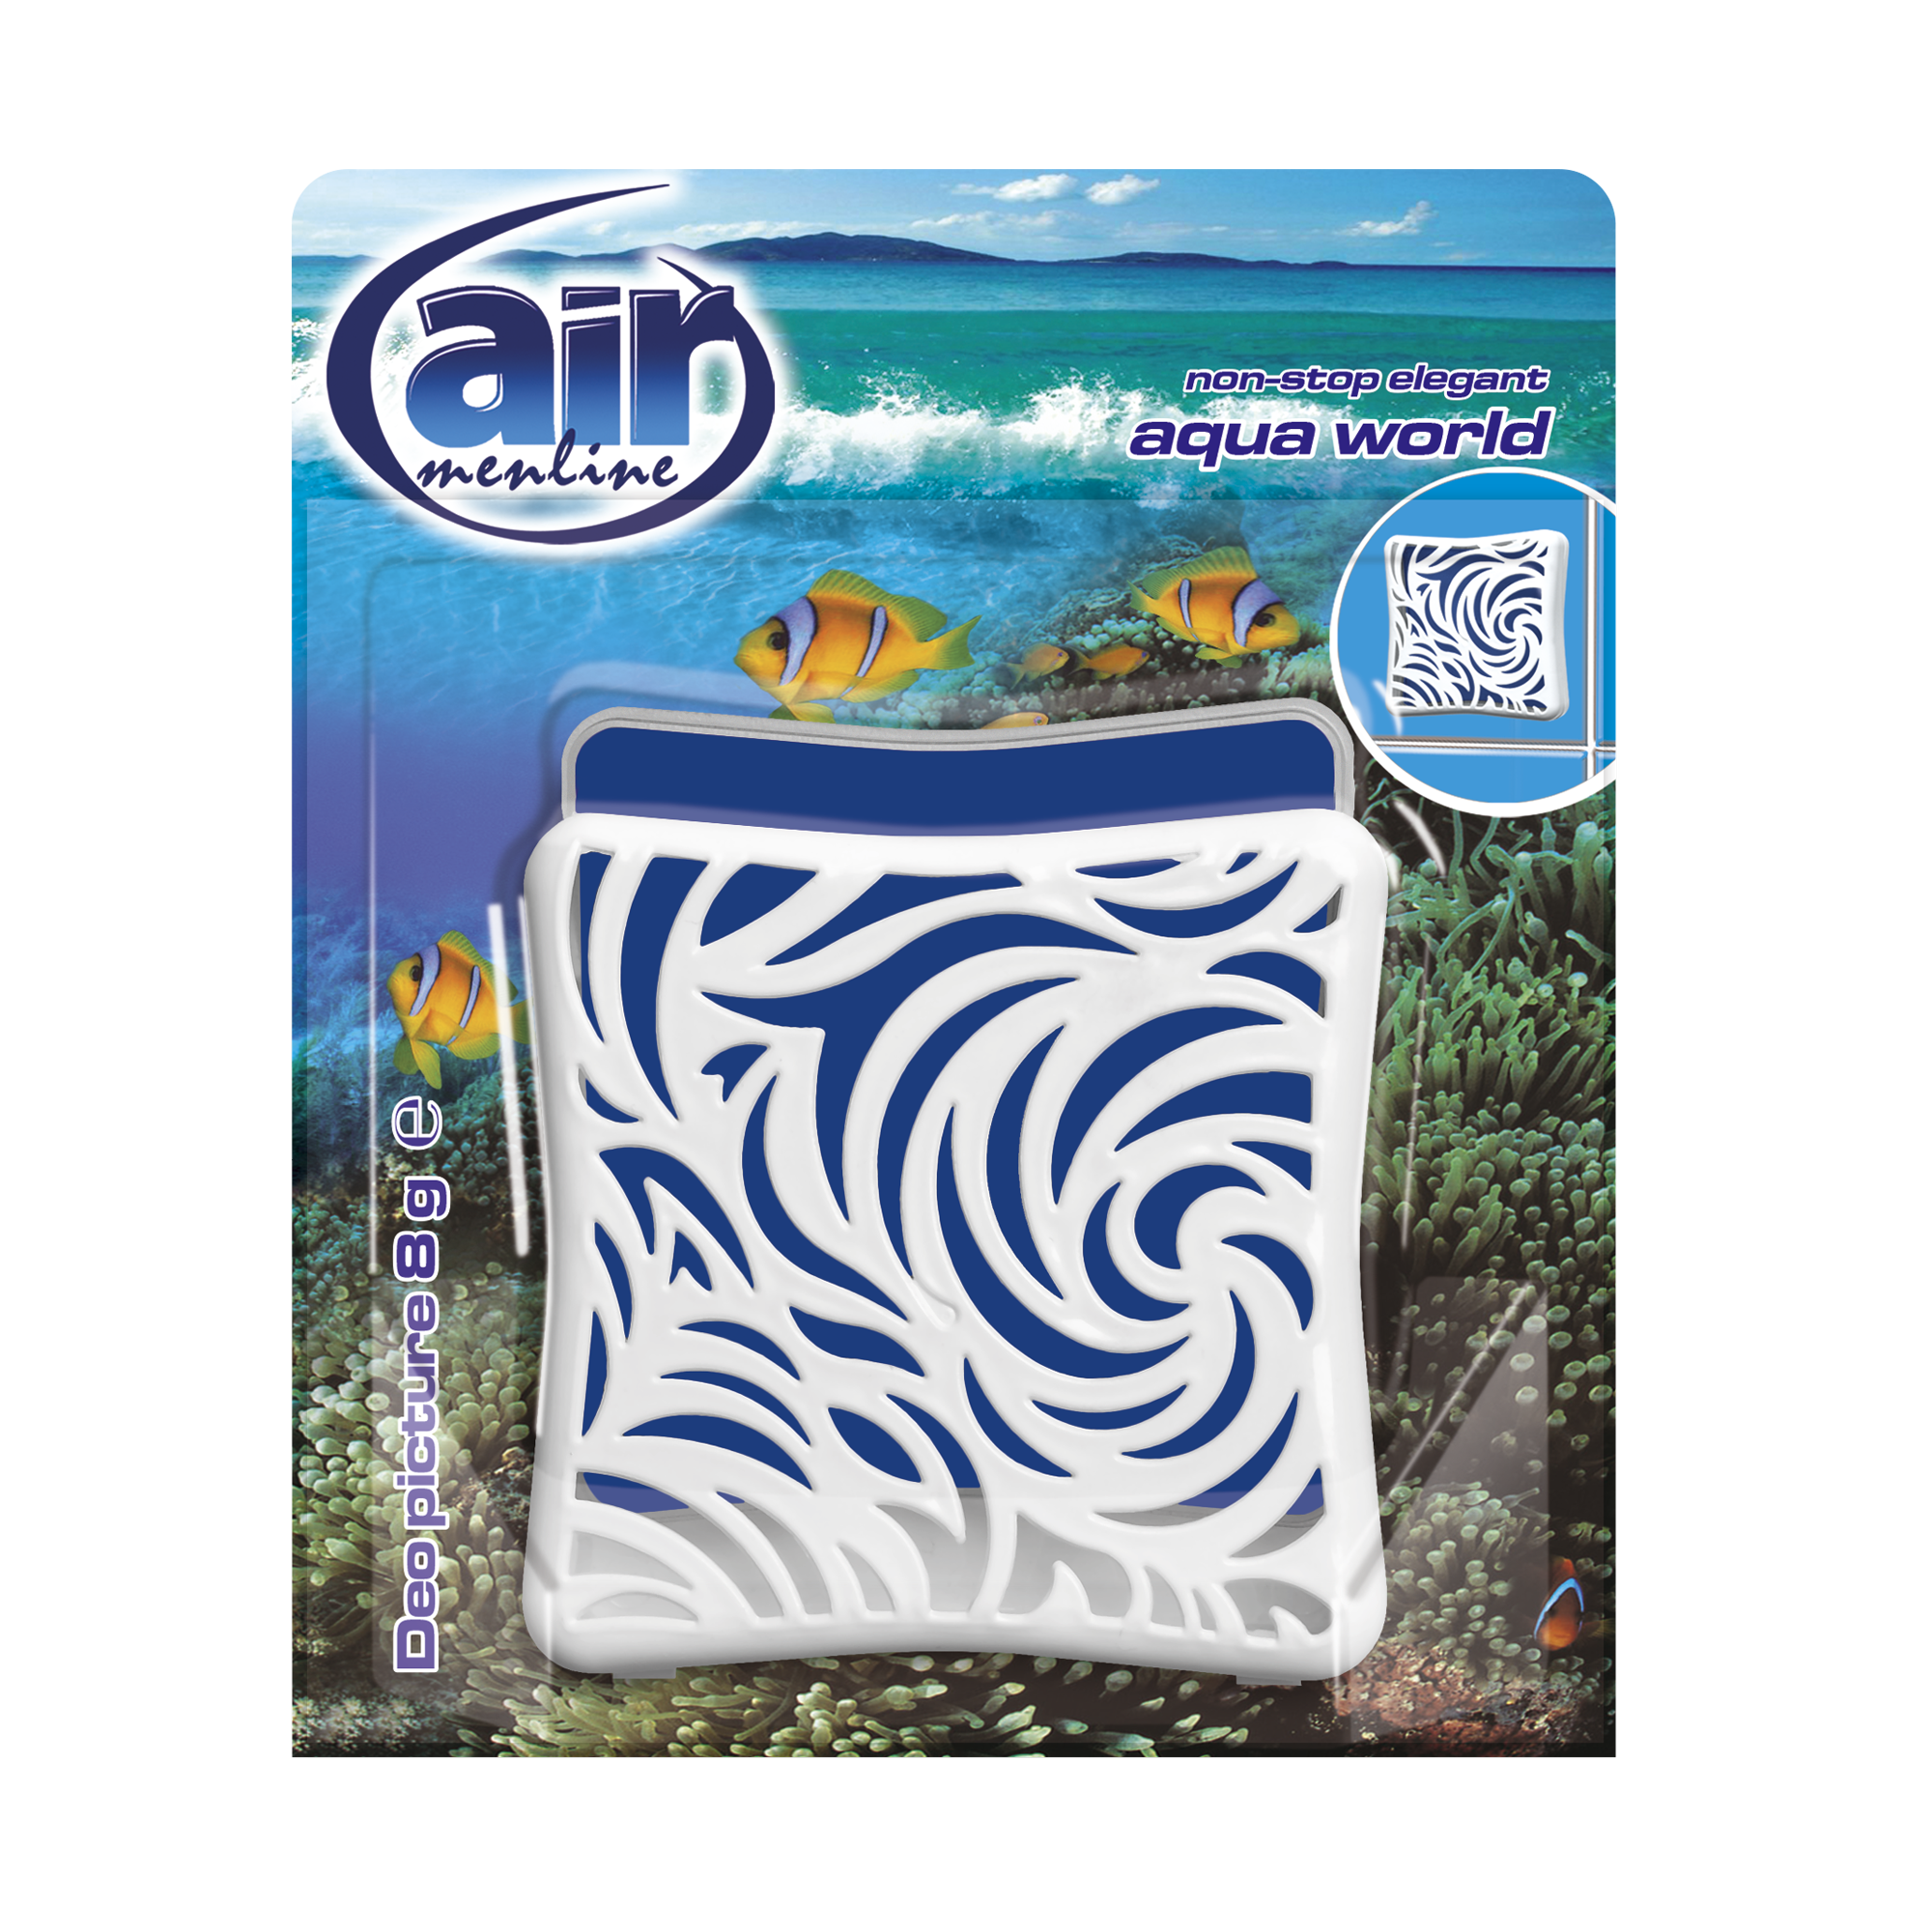 AIR menline deo picture air freshener Aqua World